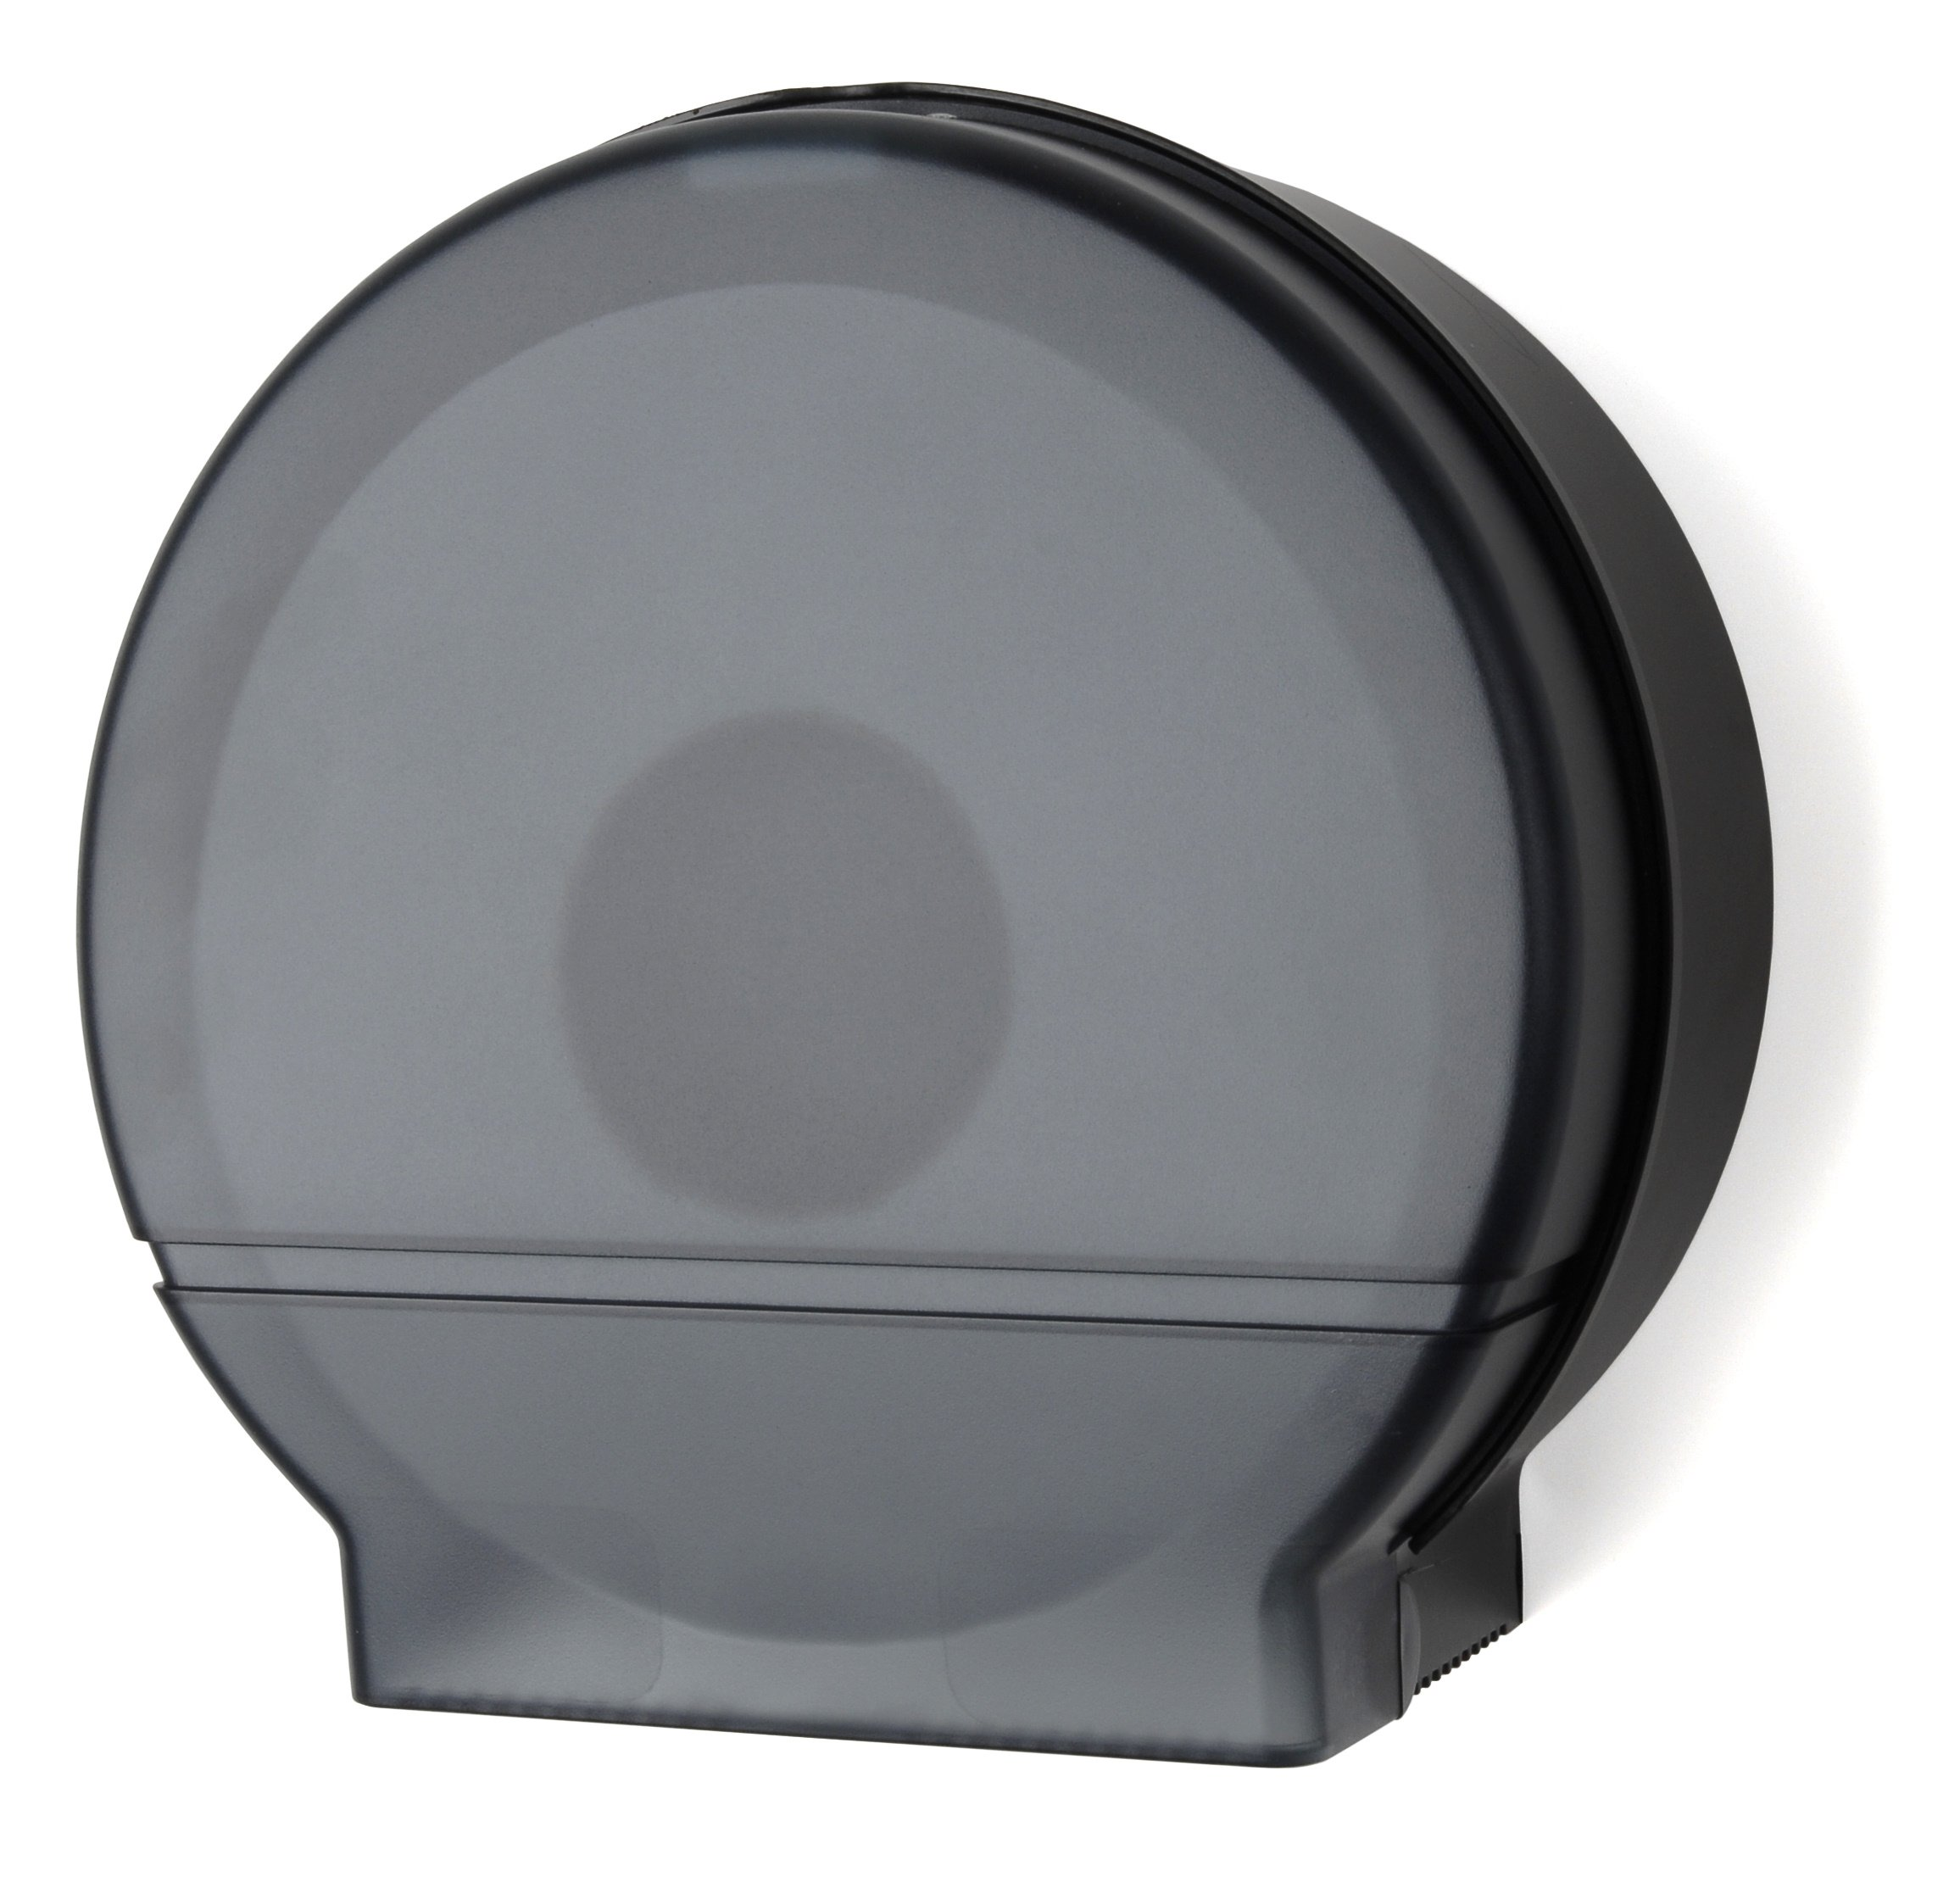 Palmer Fixture RD0026-02F Single Roll Jumbo Tissue Dispenser with Core Adaptor, Black Translucent by Palmer Fixture